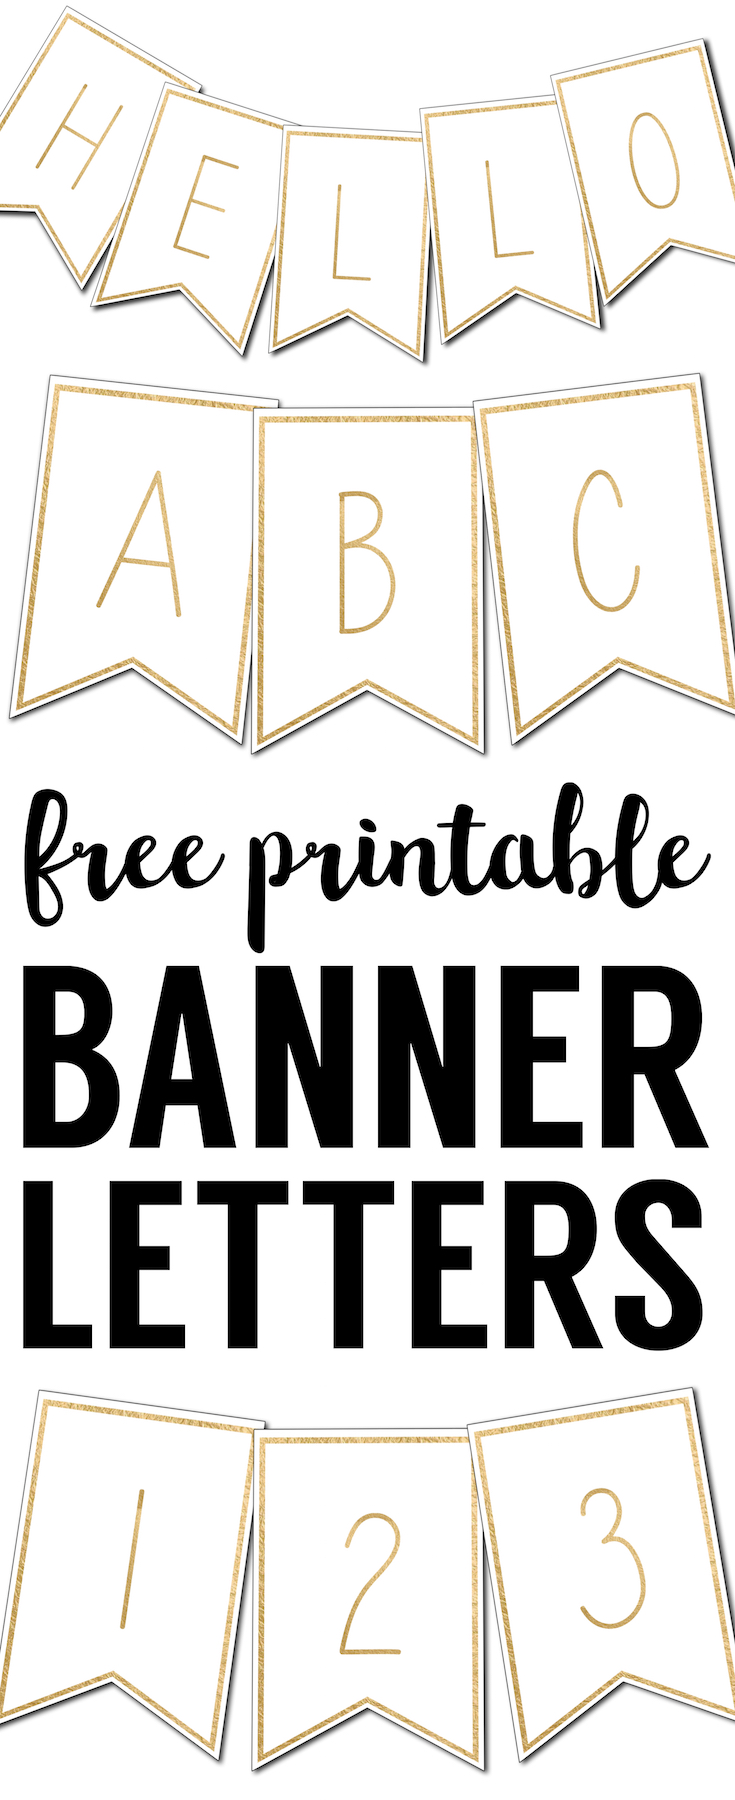 Free Printable Banner Letters Templates  Paper Trail Design. Gas Banners. Borders Stickers. Sea Tree Murals. Postpartum Signs Of Stroke. Piston Logo. Kindergarten Graduation Banners. Ottawa Senators Logo. Custom Magnetic Signs